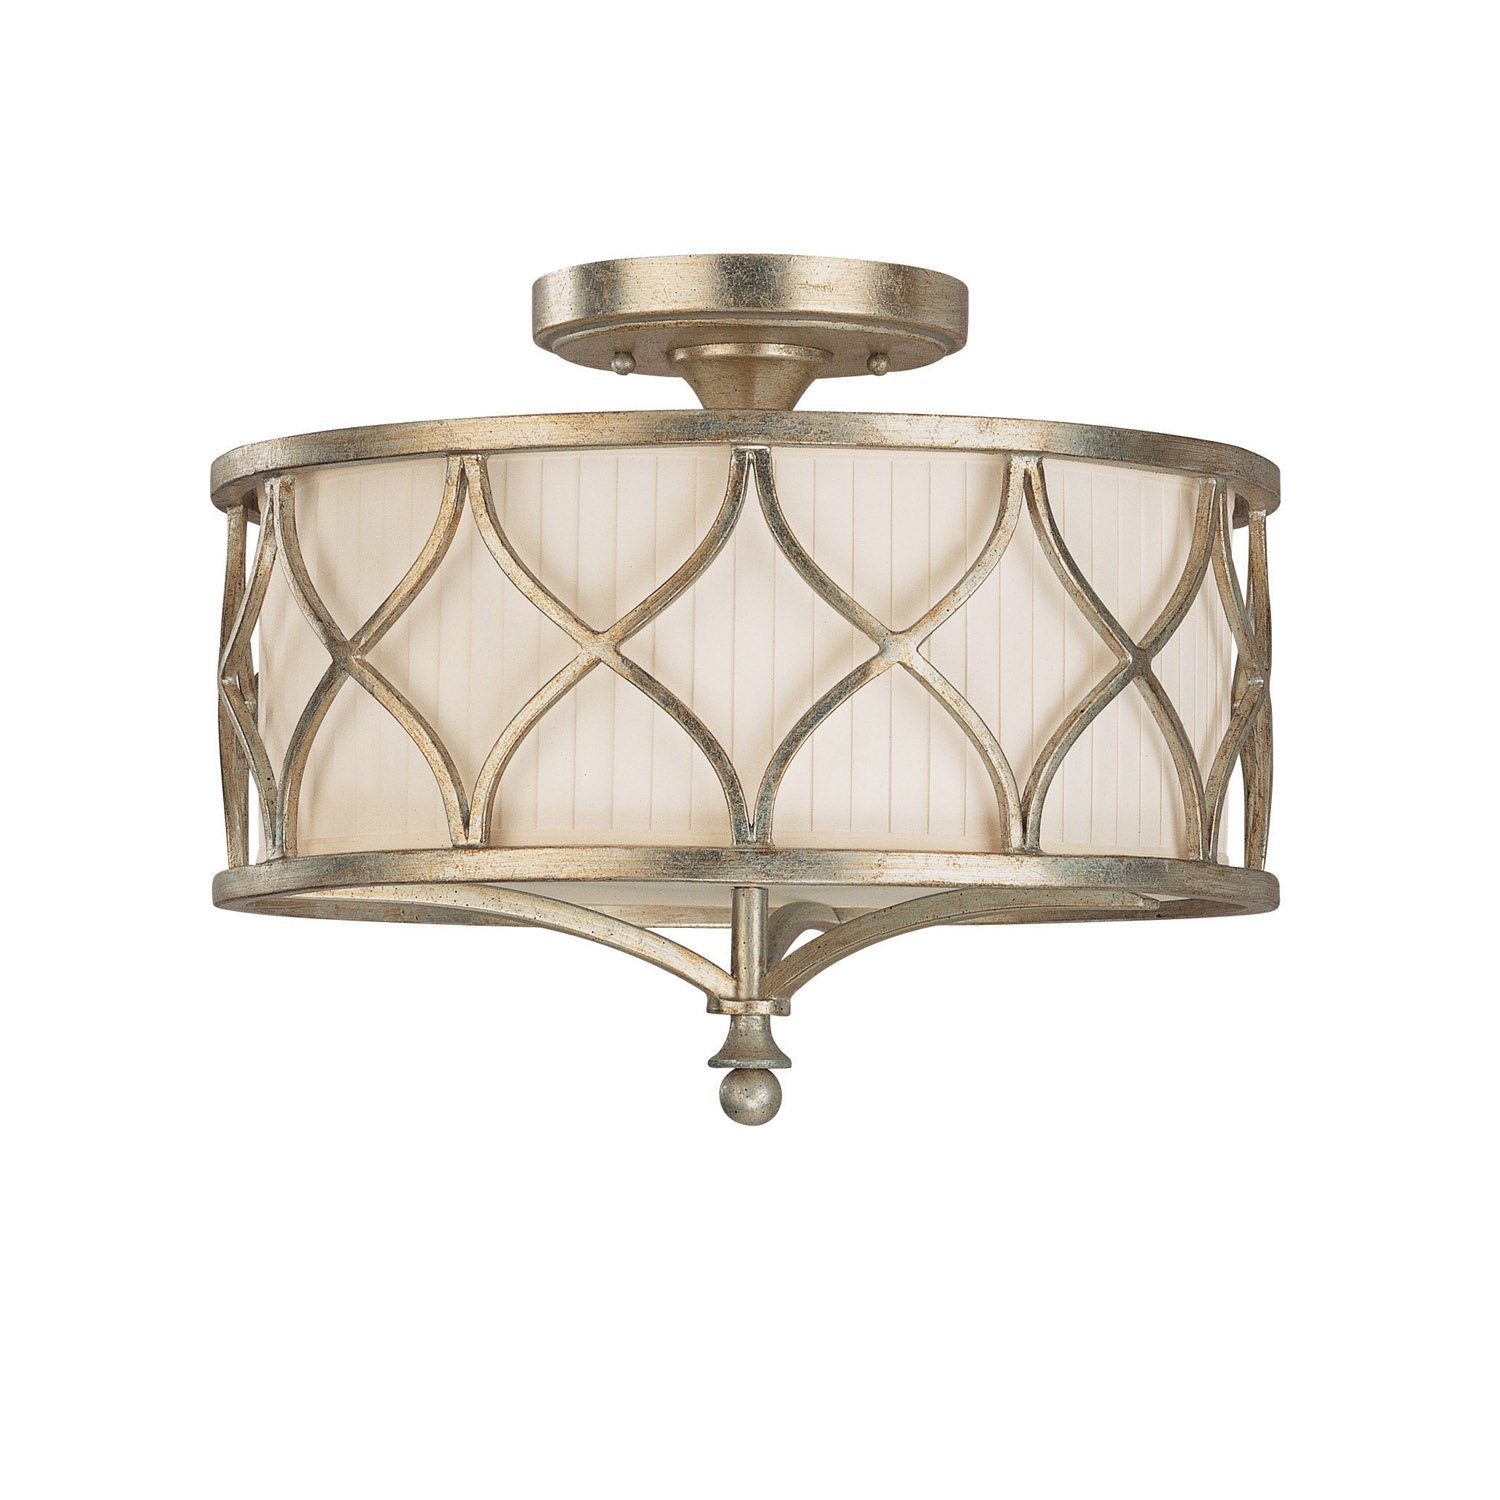 Capital Lighting 4003wg 487 Semi Flush Mount With Frosted Glass Diffuser Shades Winter Gold Finish Close To Ceiling Light Fixtures Com